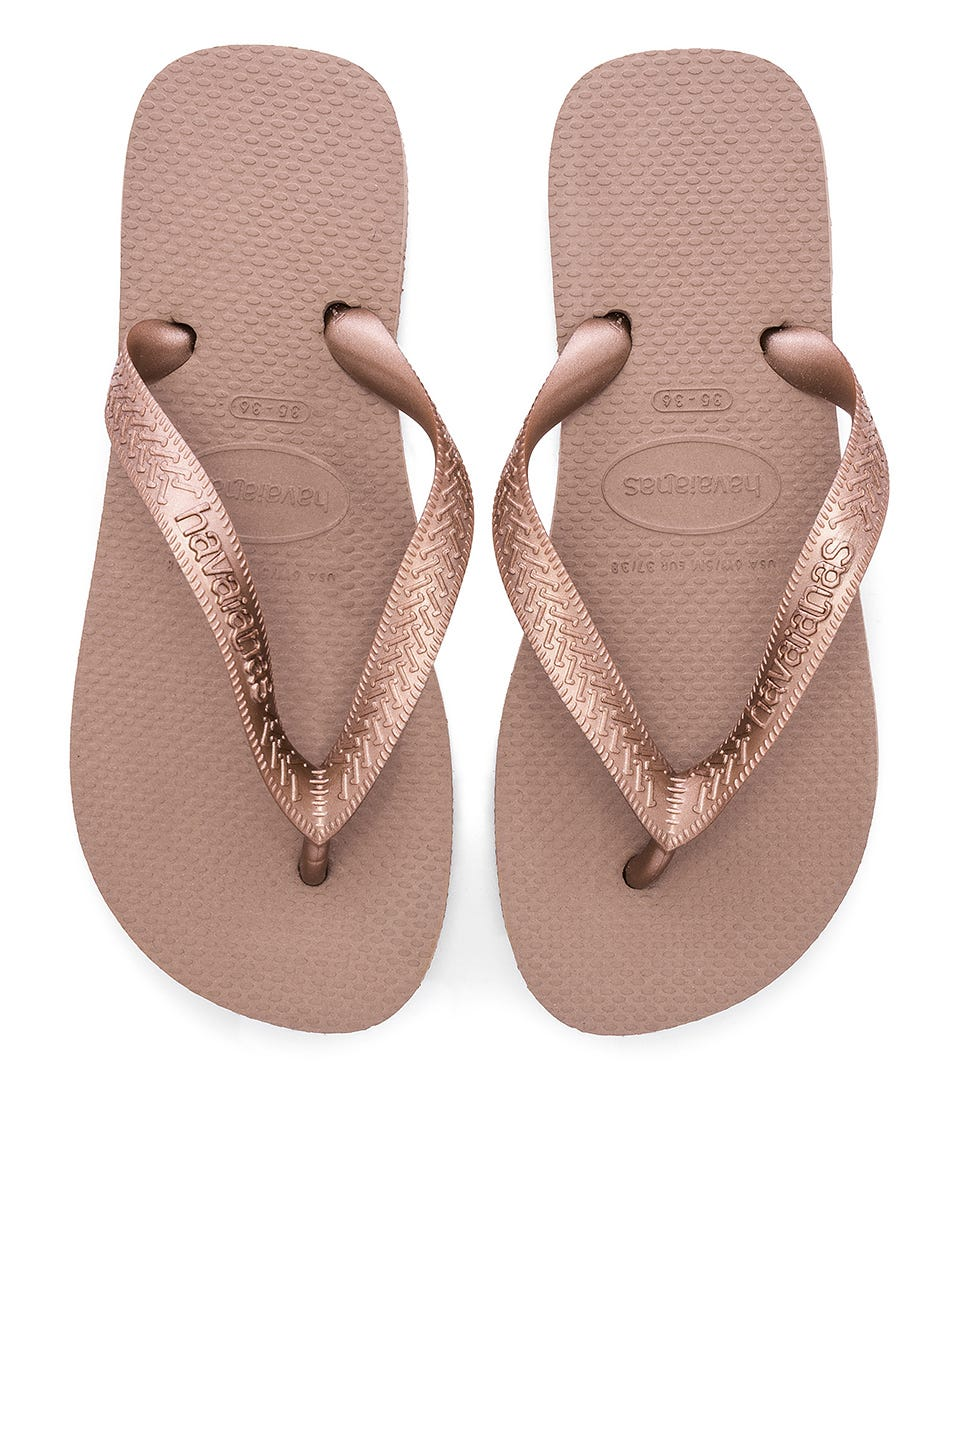 Top Tiras Sandal in Rose Gold